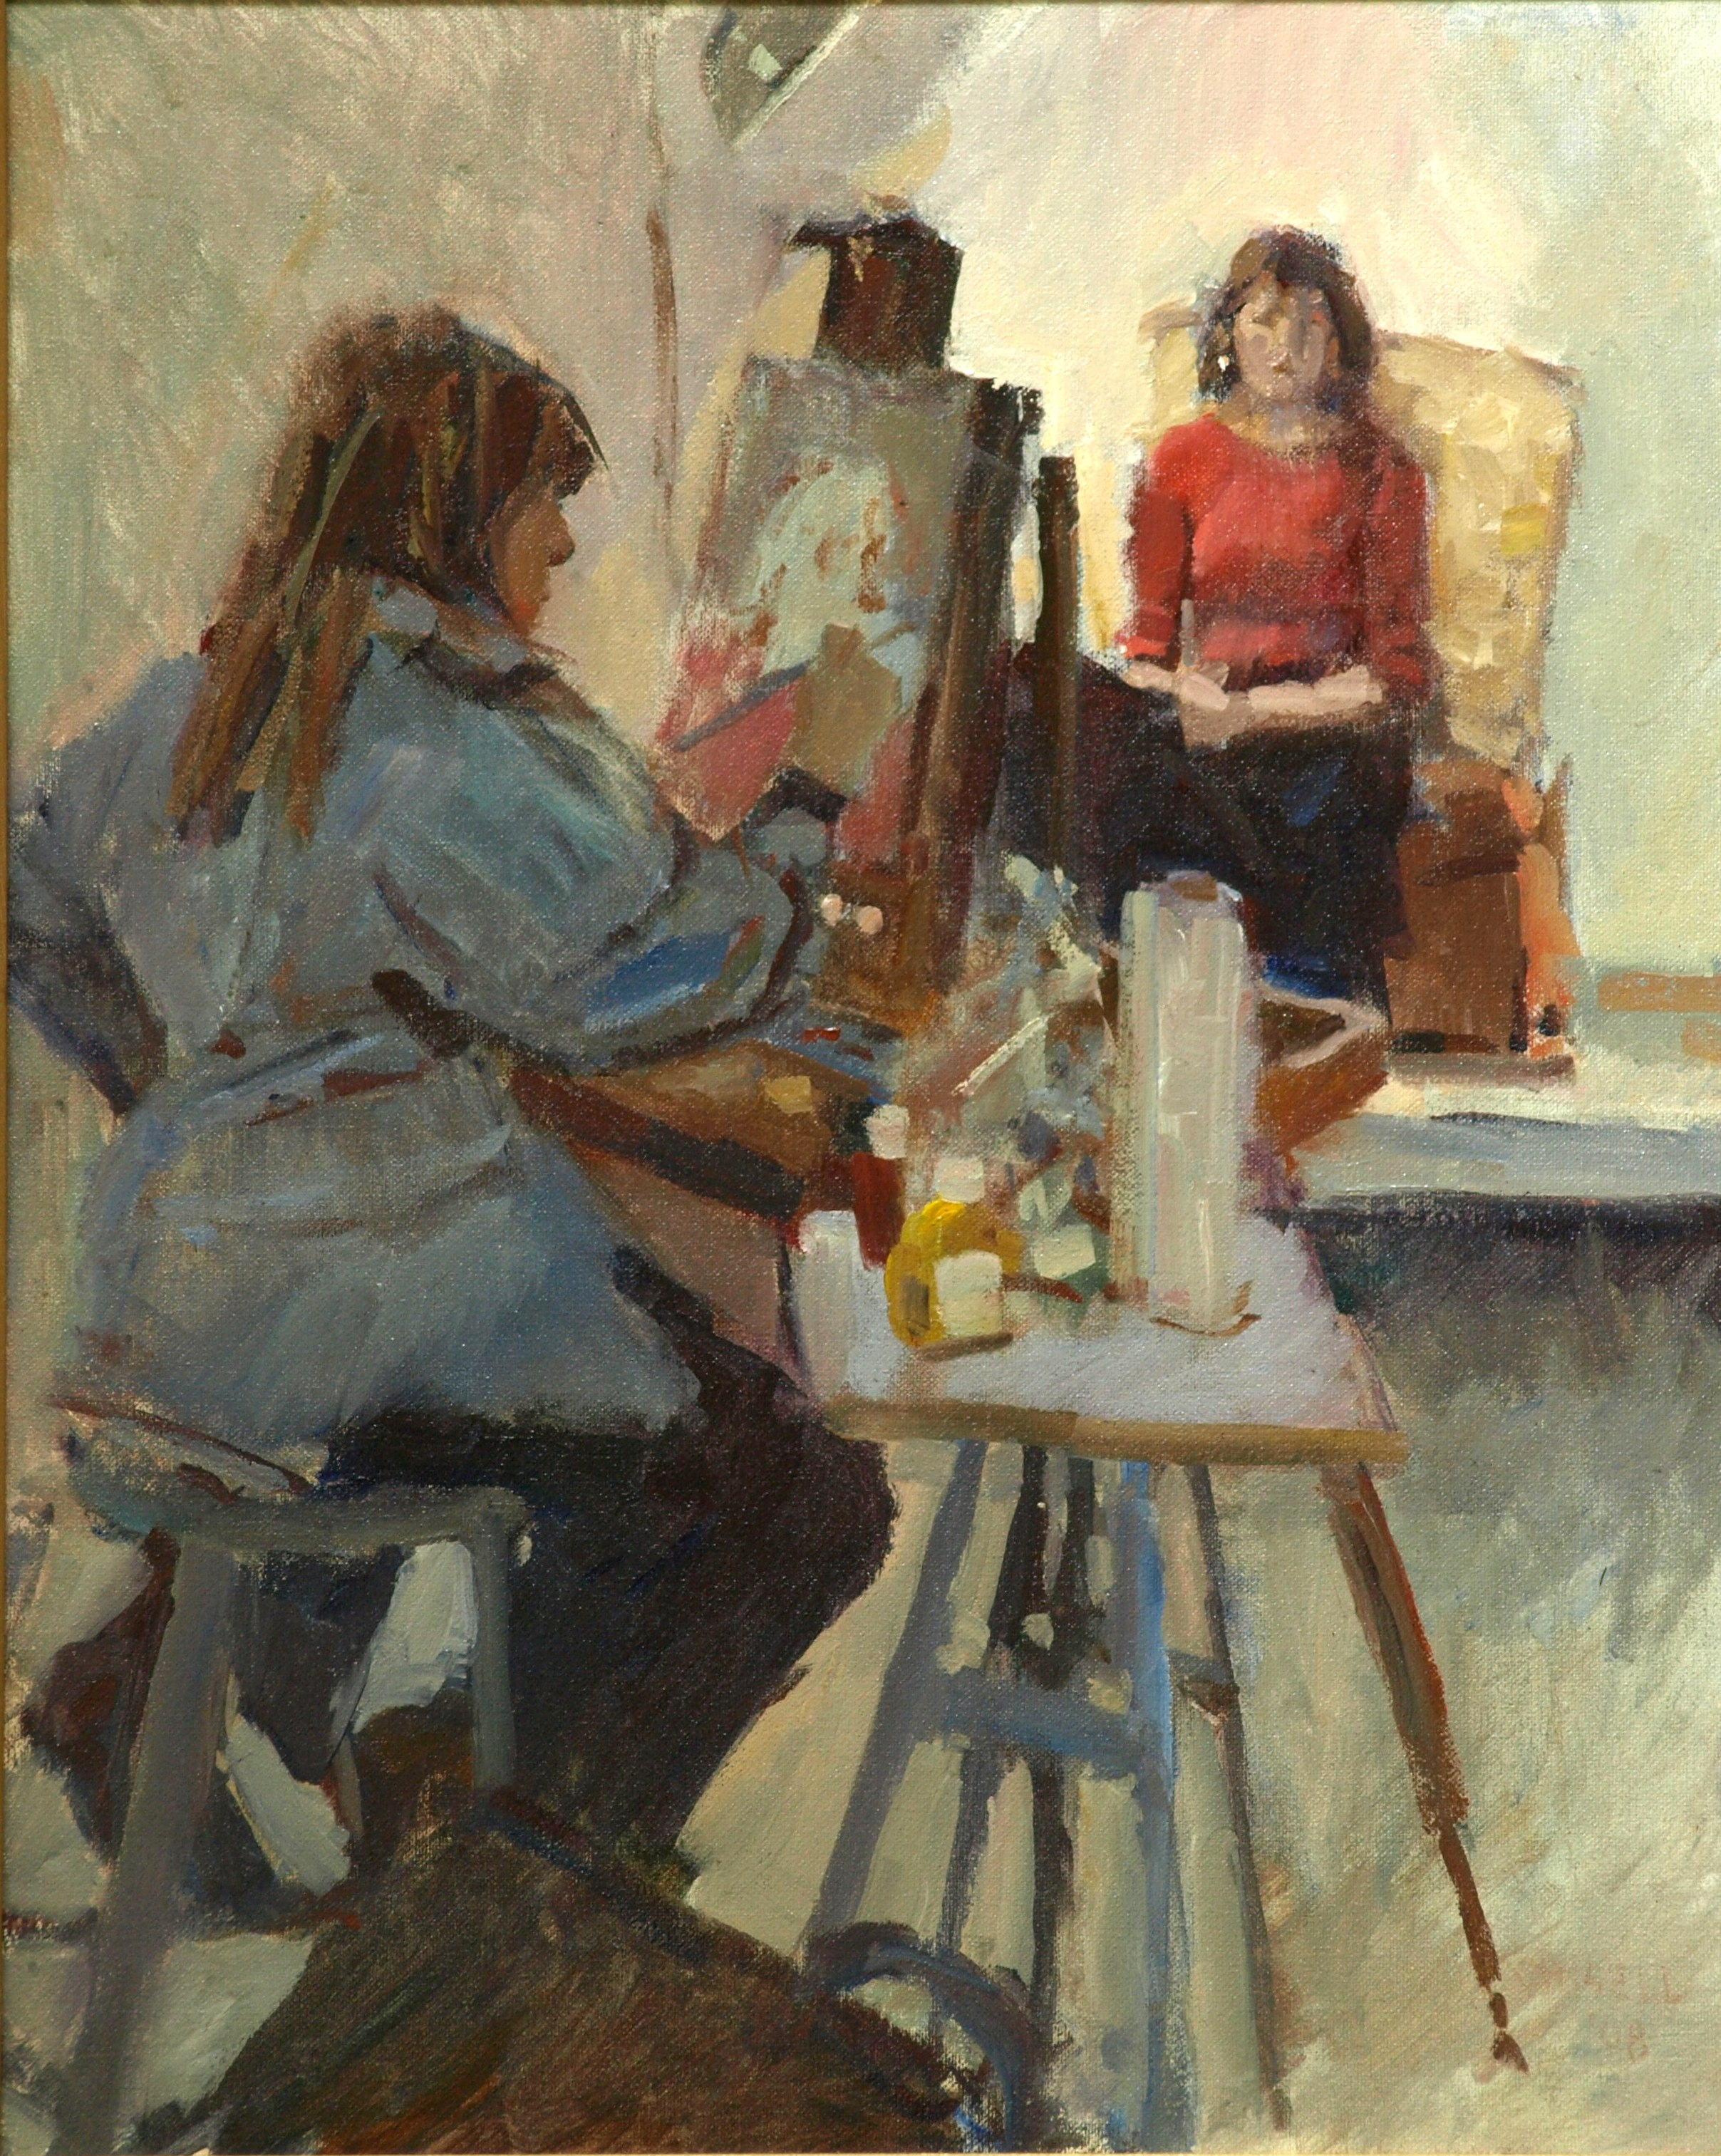 Art Student, Oil on Canvas, 20 x 16 Inches, by Susan Grisell, $425